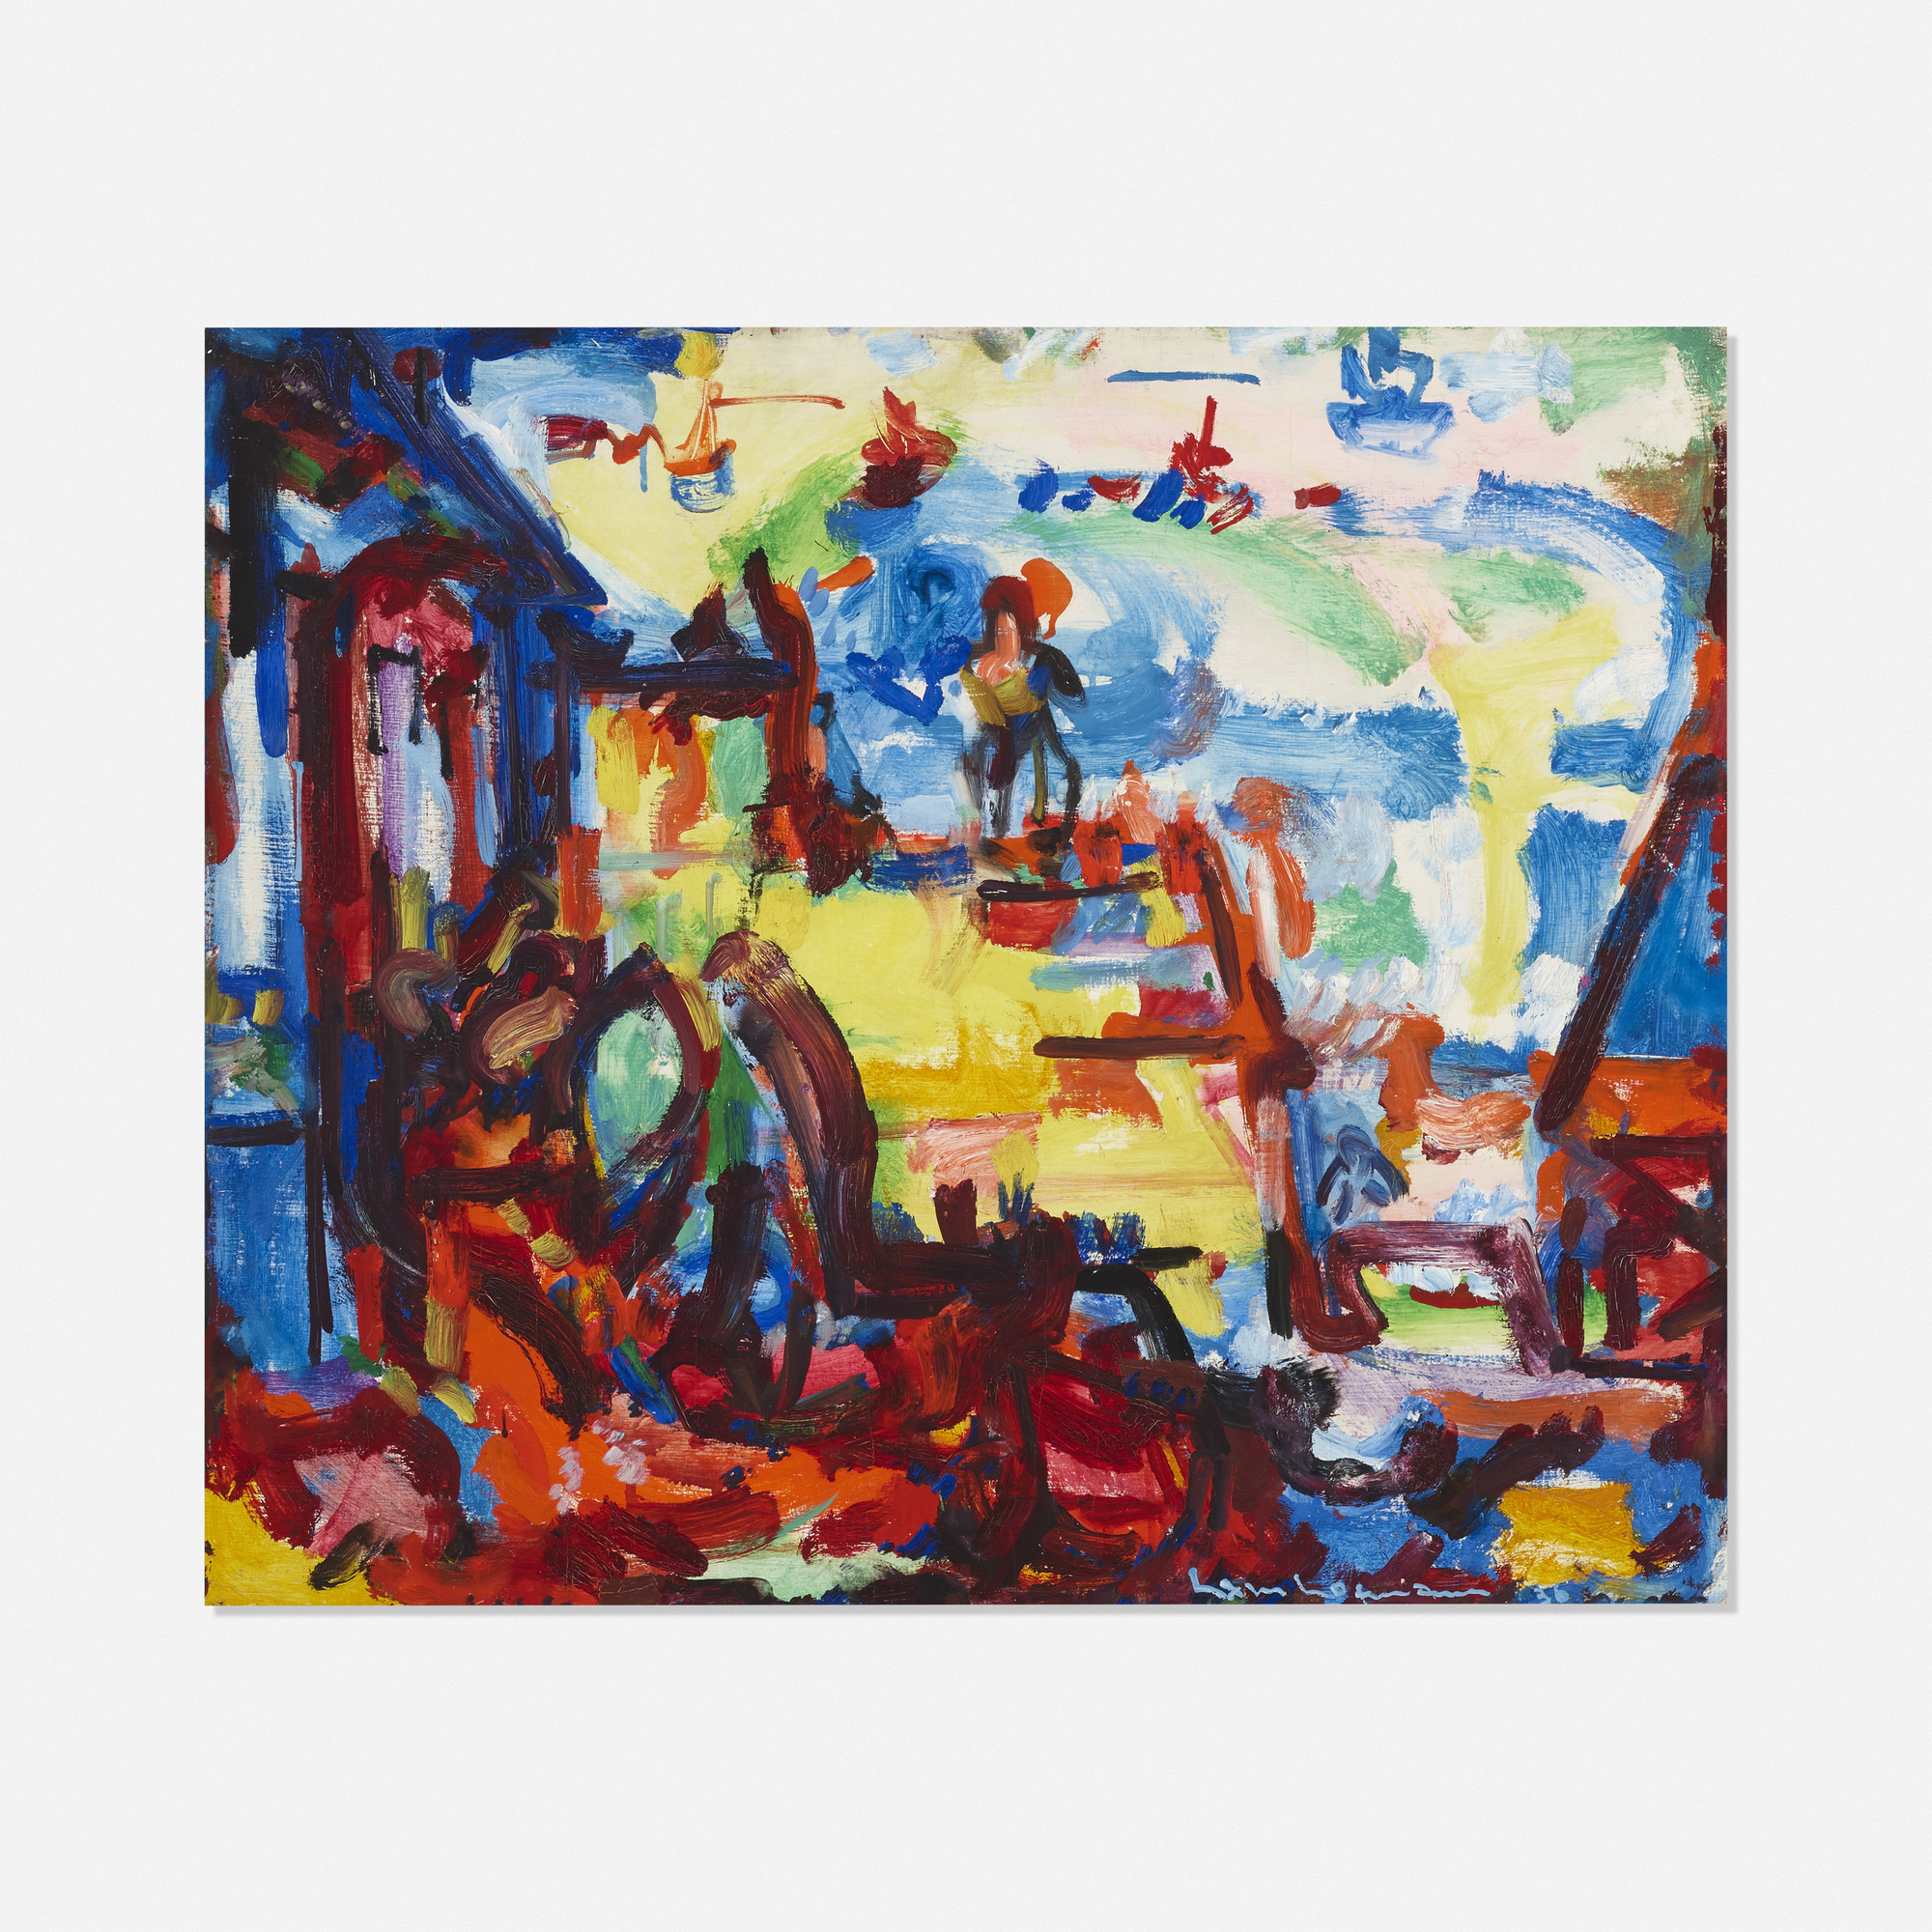 160: Hans Hofmann / On the Pier (1 of 1)